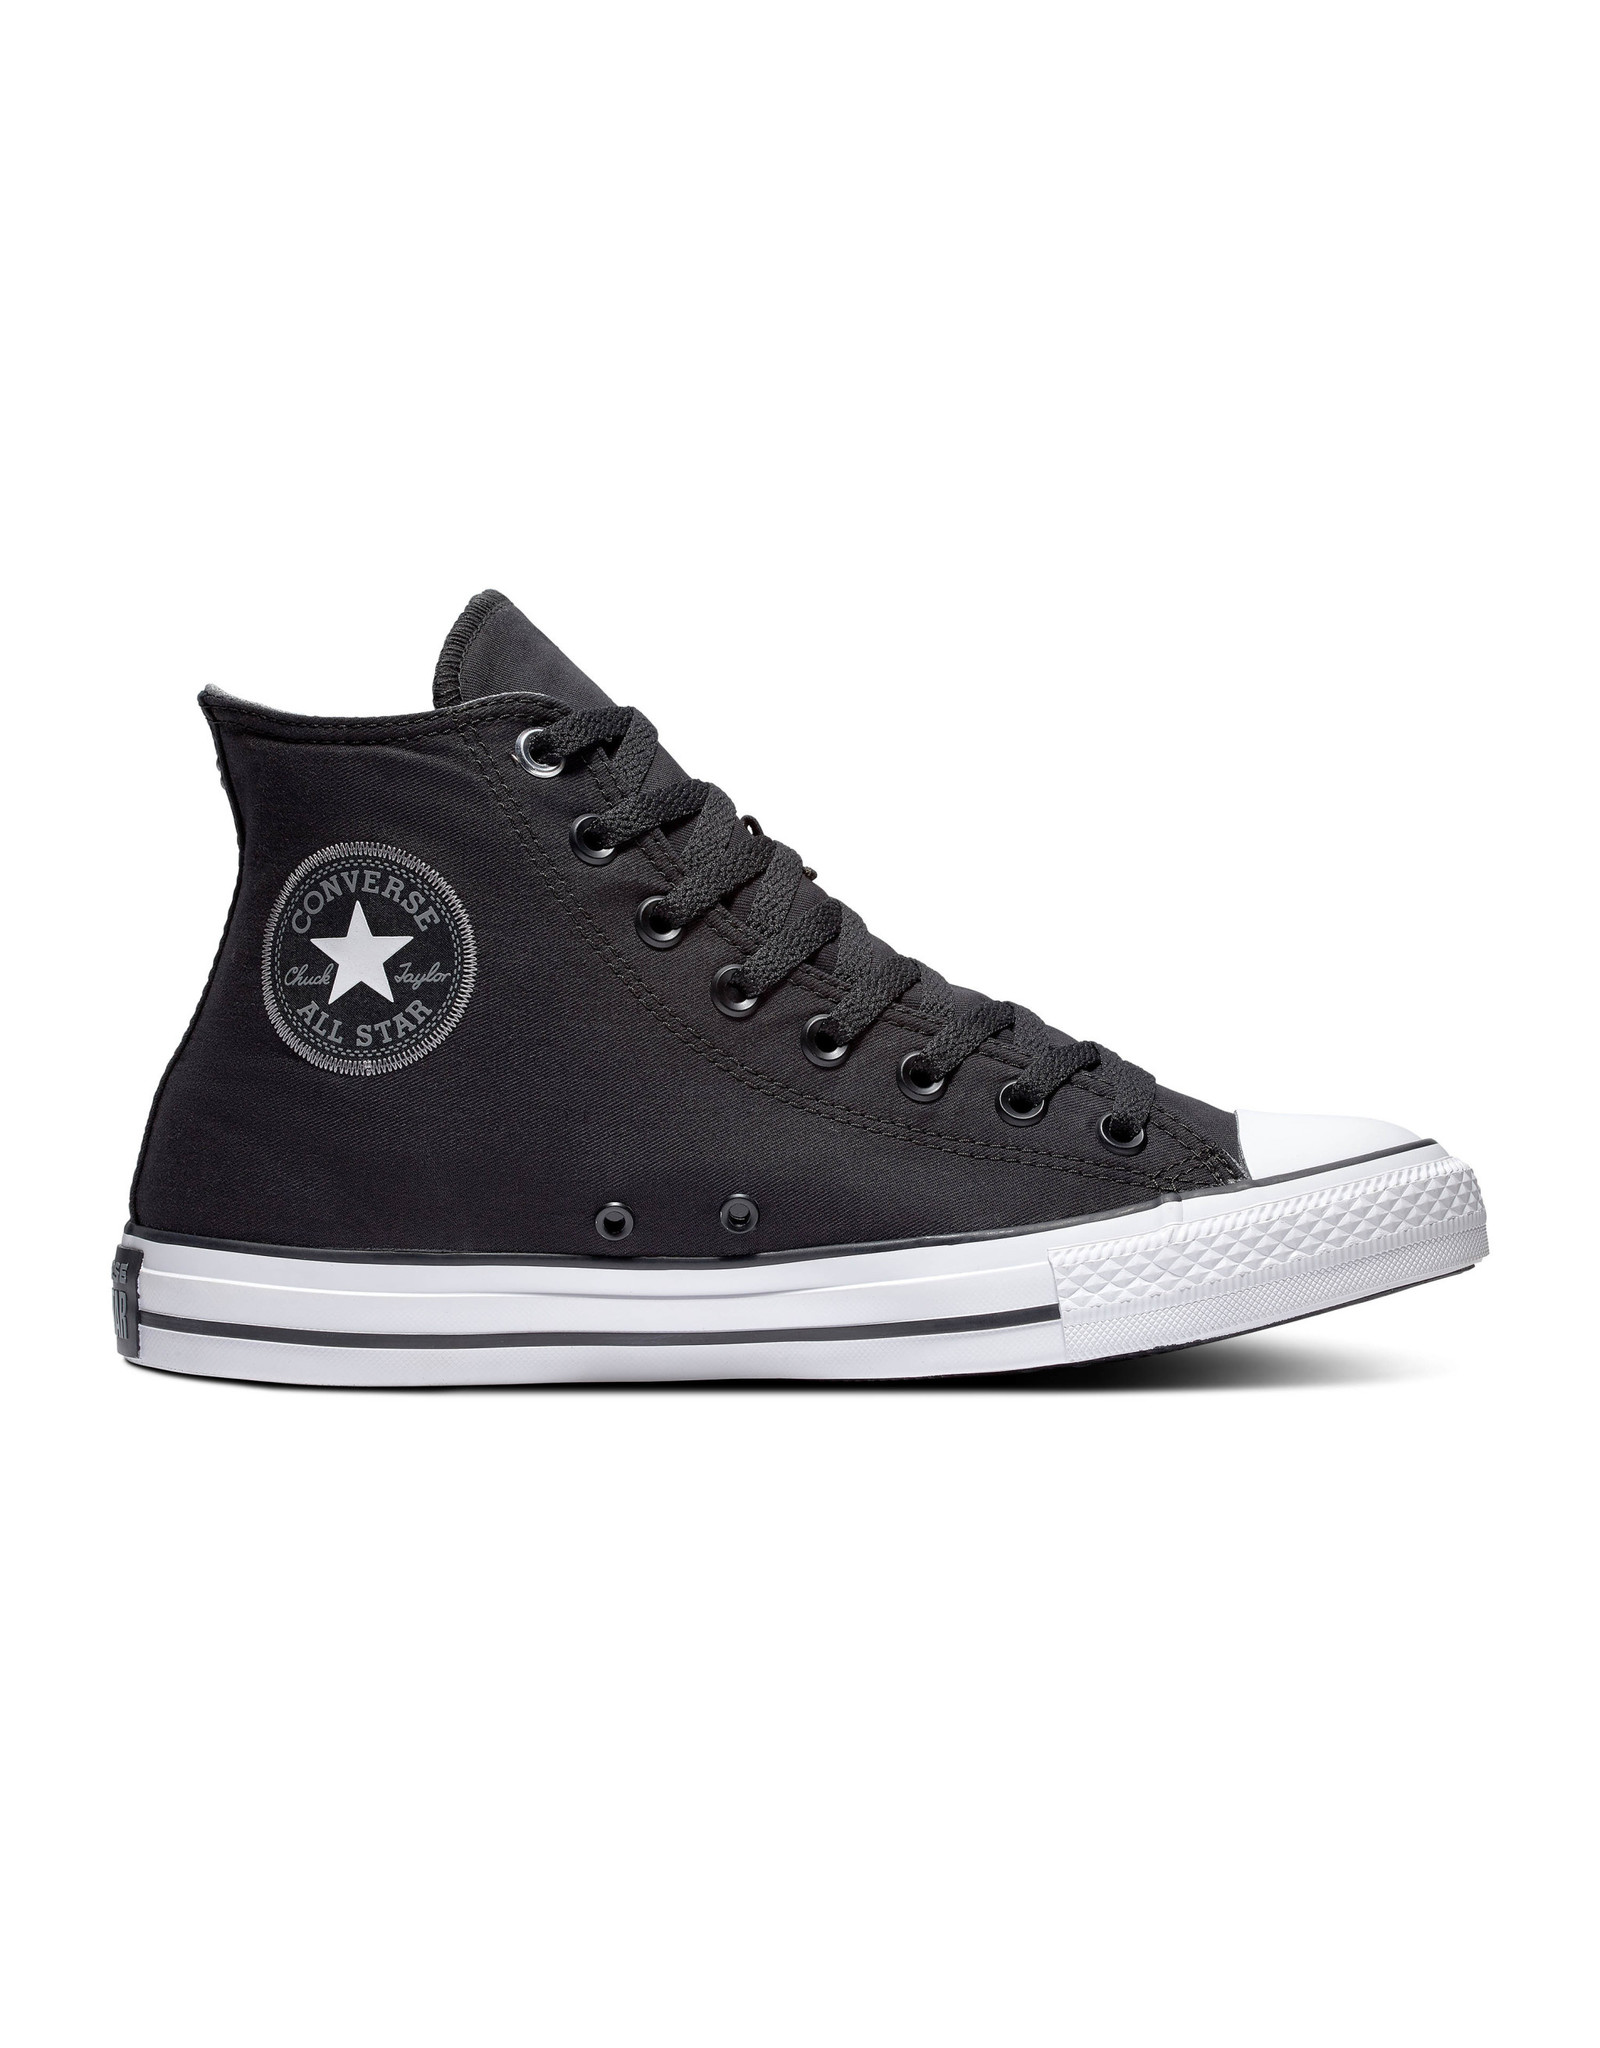 CONVERSE CHUCK TAYLOR ALL STAR HI BLACK/BLACK/WHITE C19B-164880C